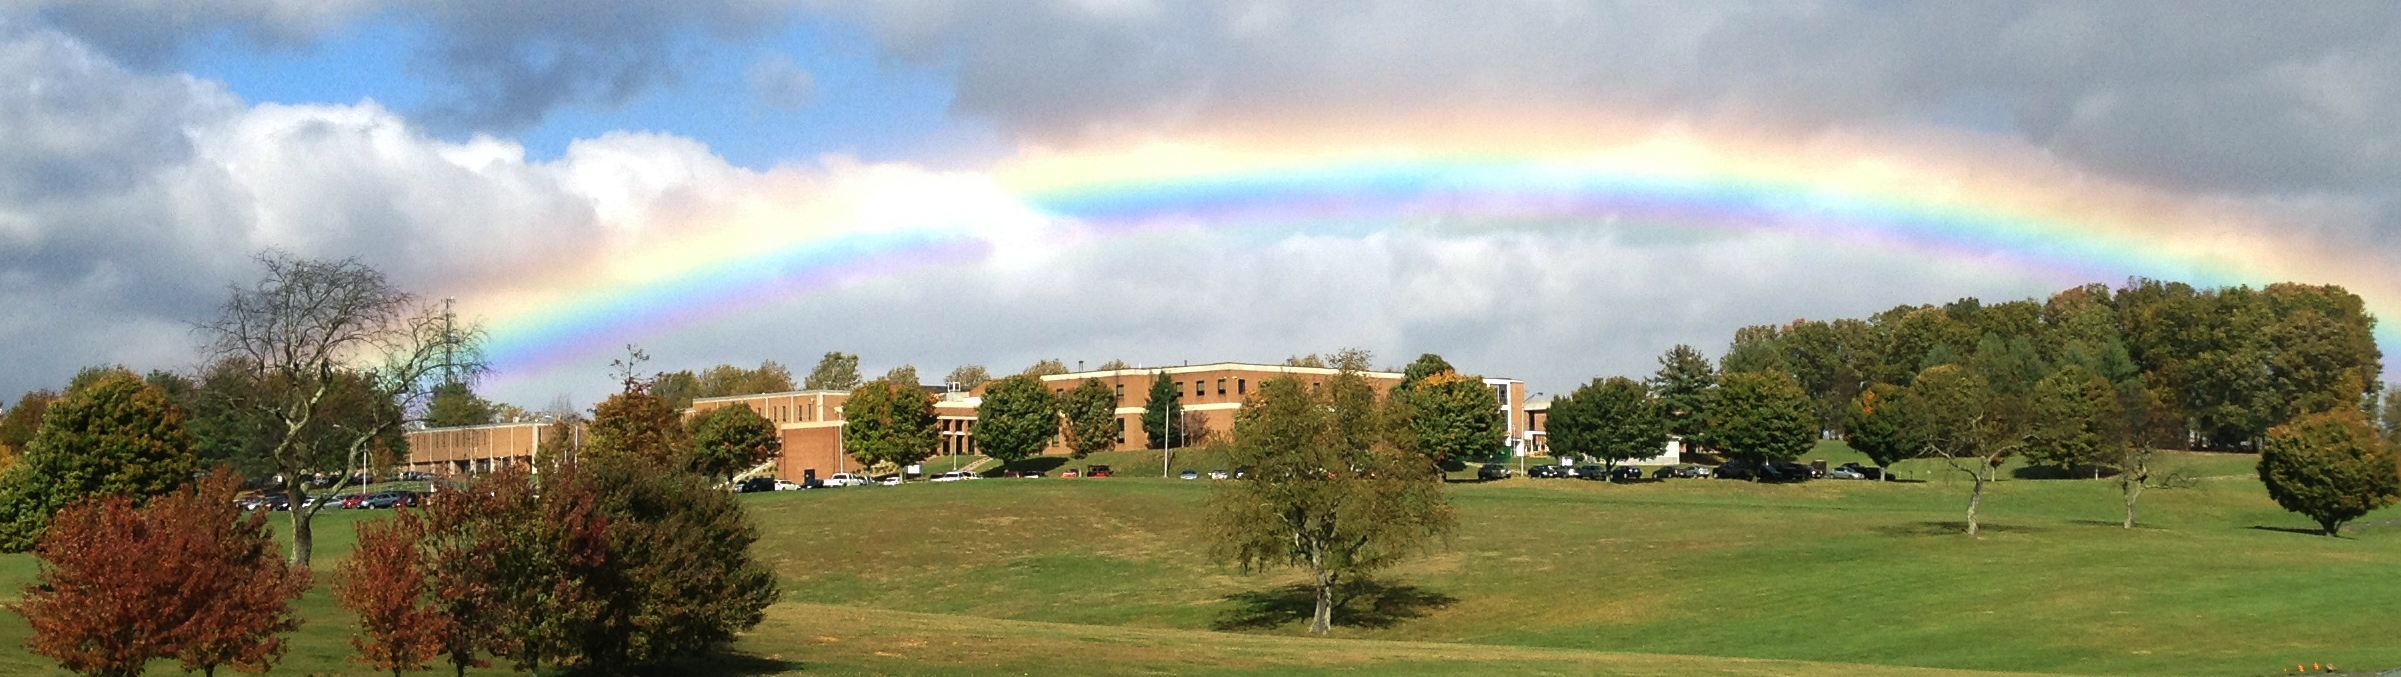 Photo of a rainbow over the Wytheville Campus